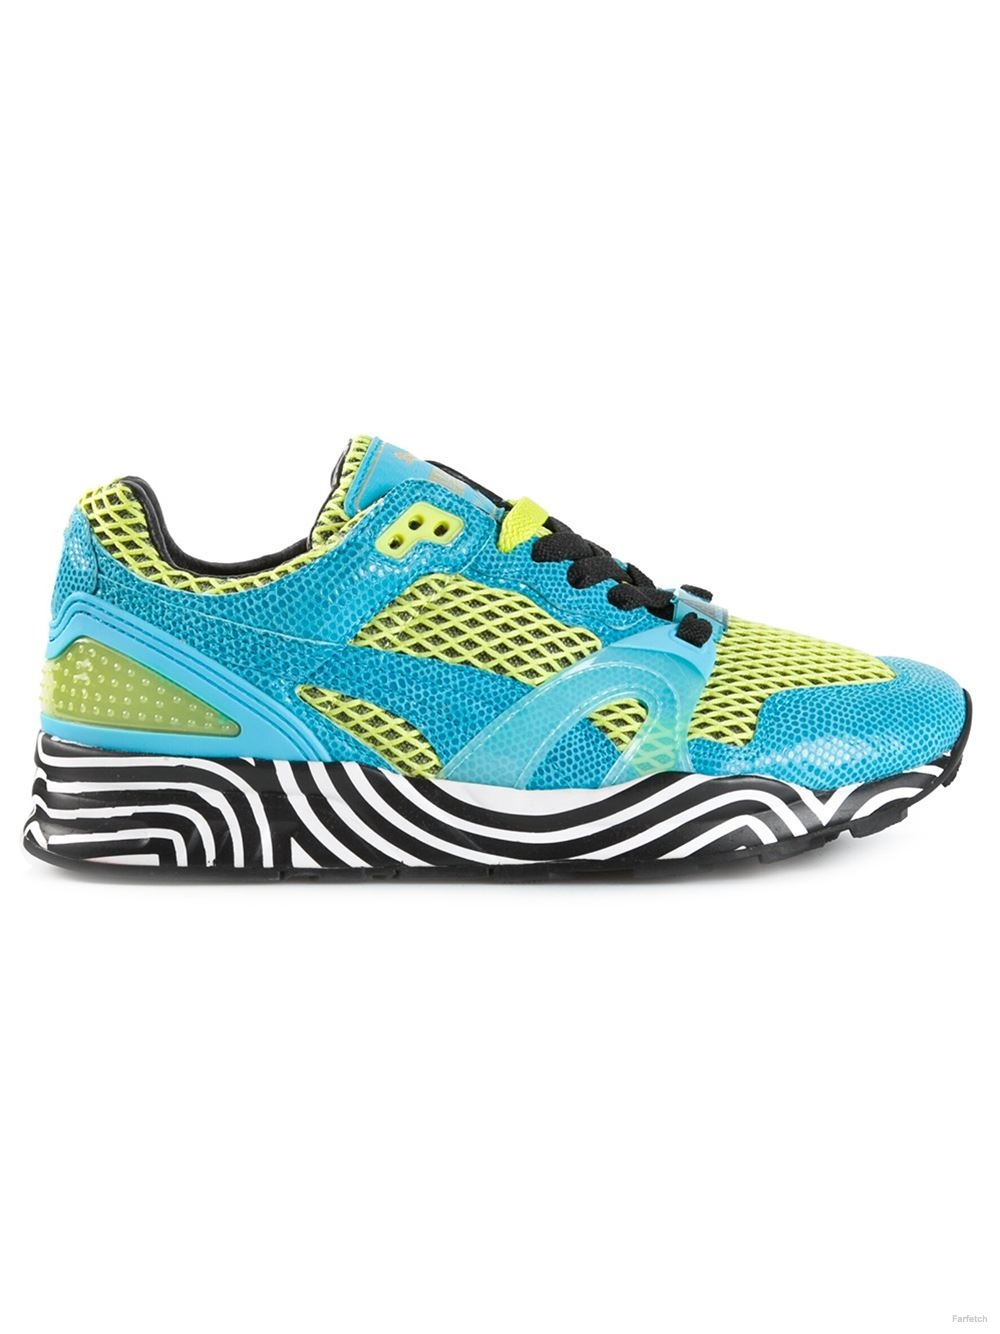 puma-solange-trinomic-swirls-sneakers